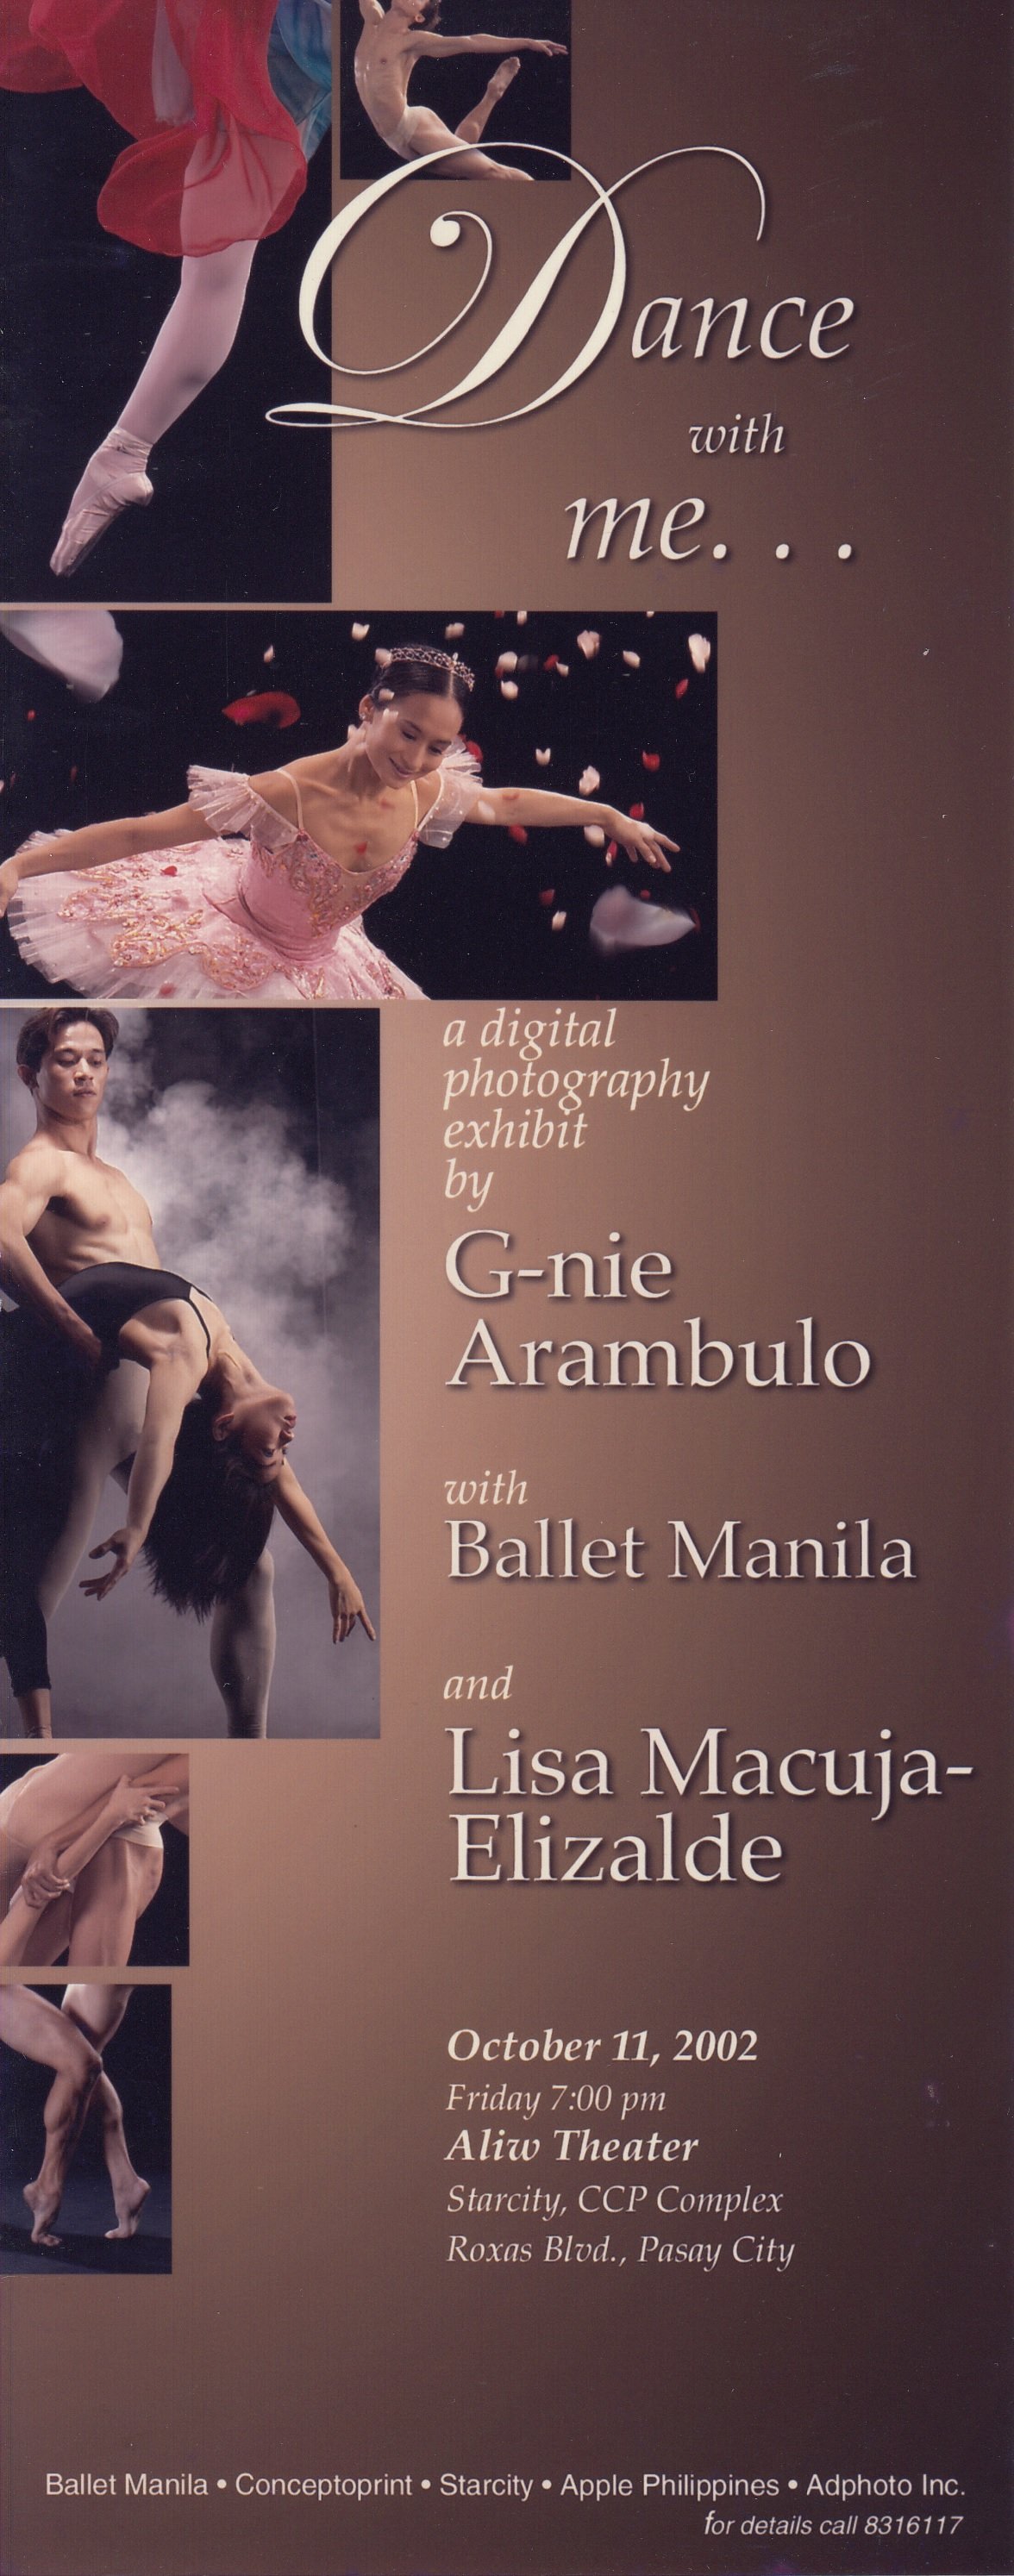 The invitation to G-nie Arambulo's first photo exhibit featuring Ballet Manila dancers in 2002. From the Ballet Manila Archives collection